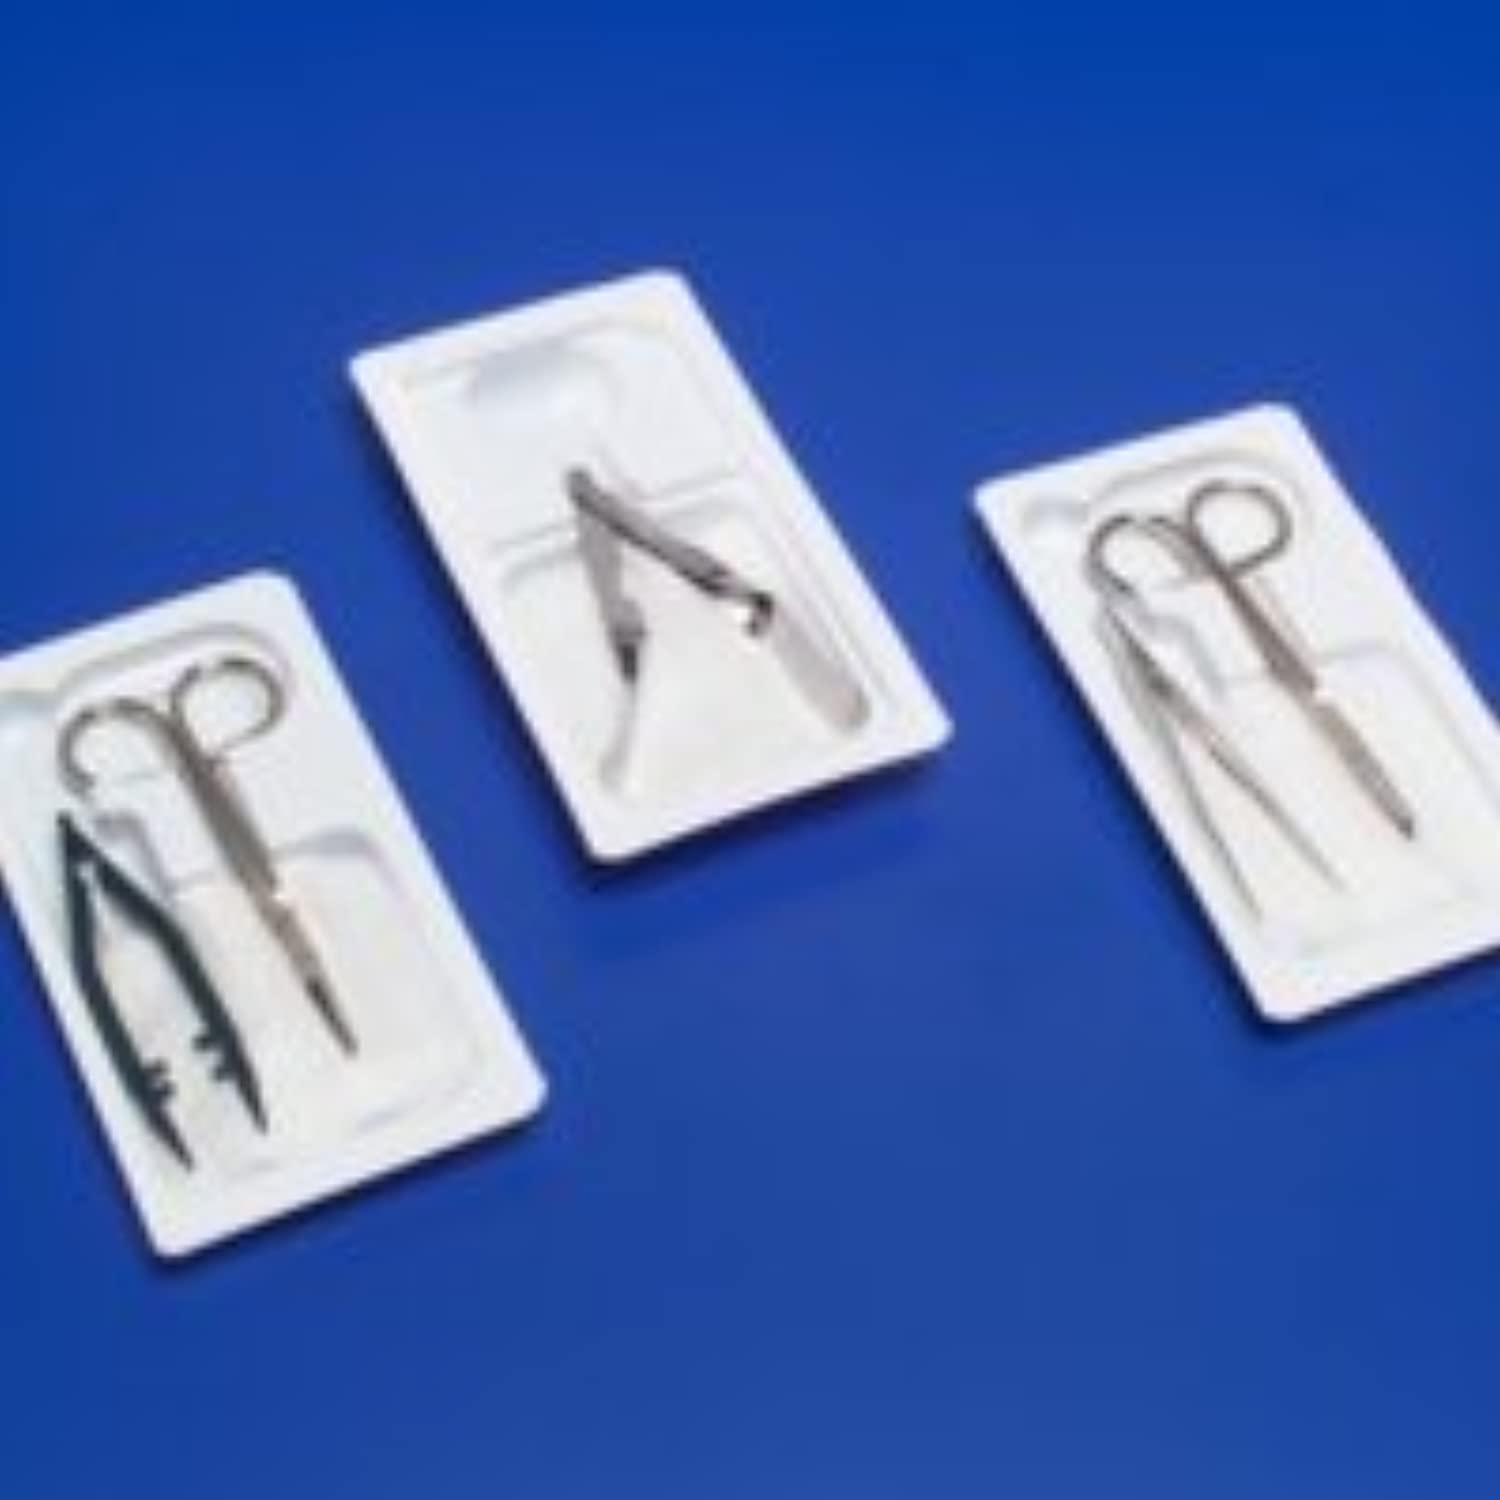 Units Per Case 48 CURITY Staple Removal Kit Units Per Case 48 KENDALL HEALTHCARE PROD. 66700